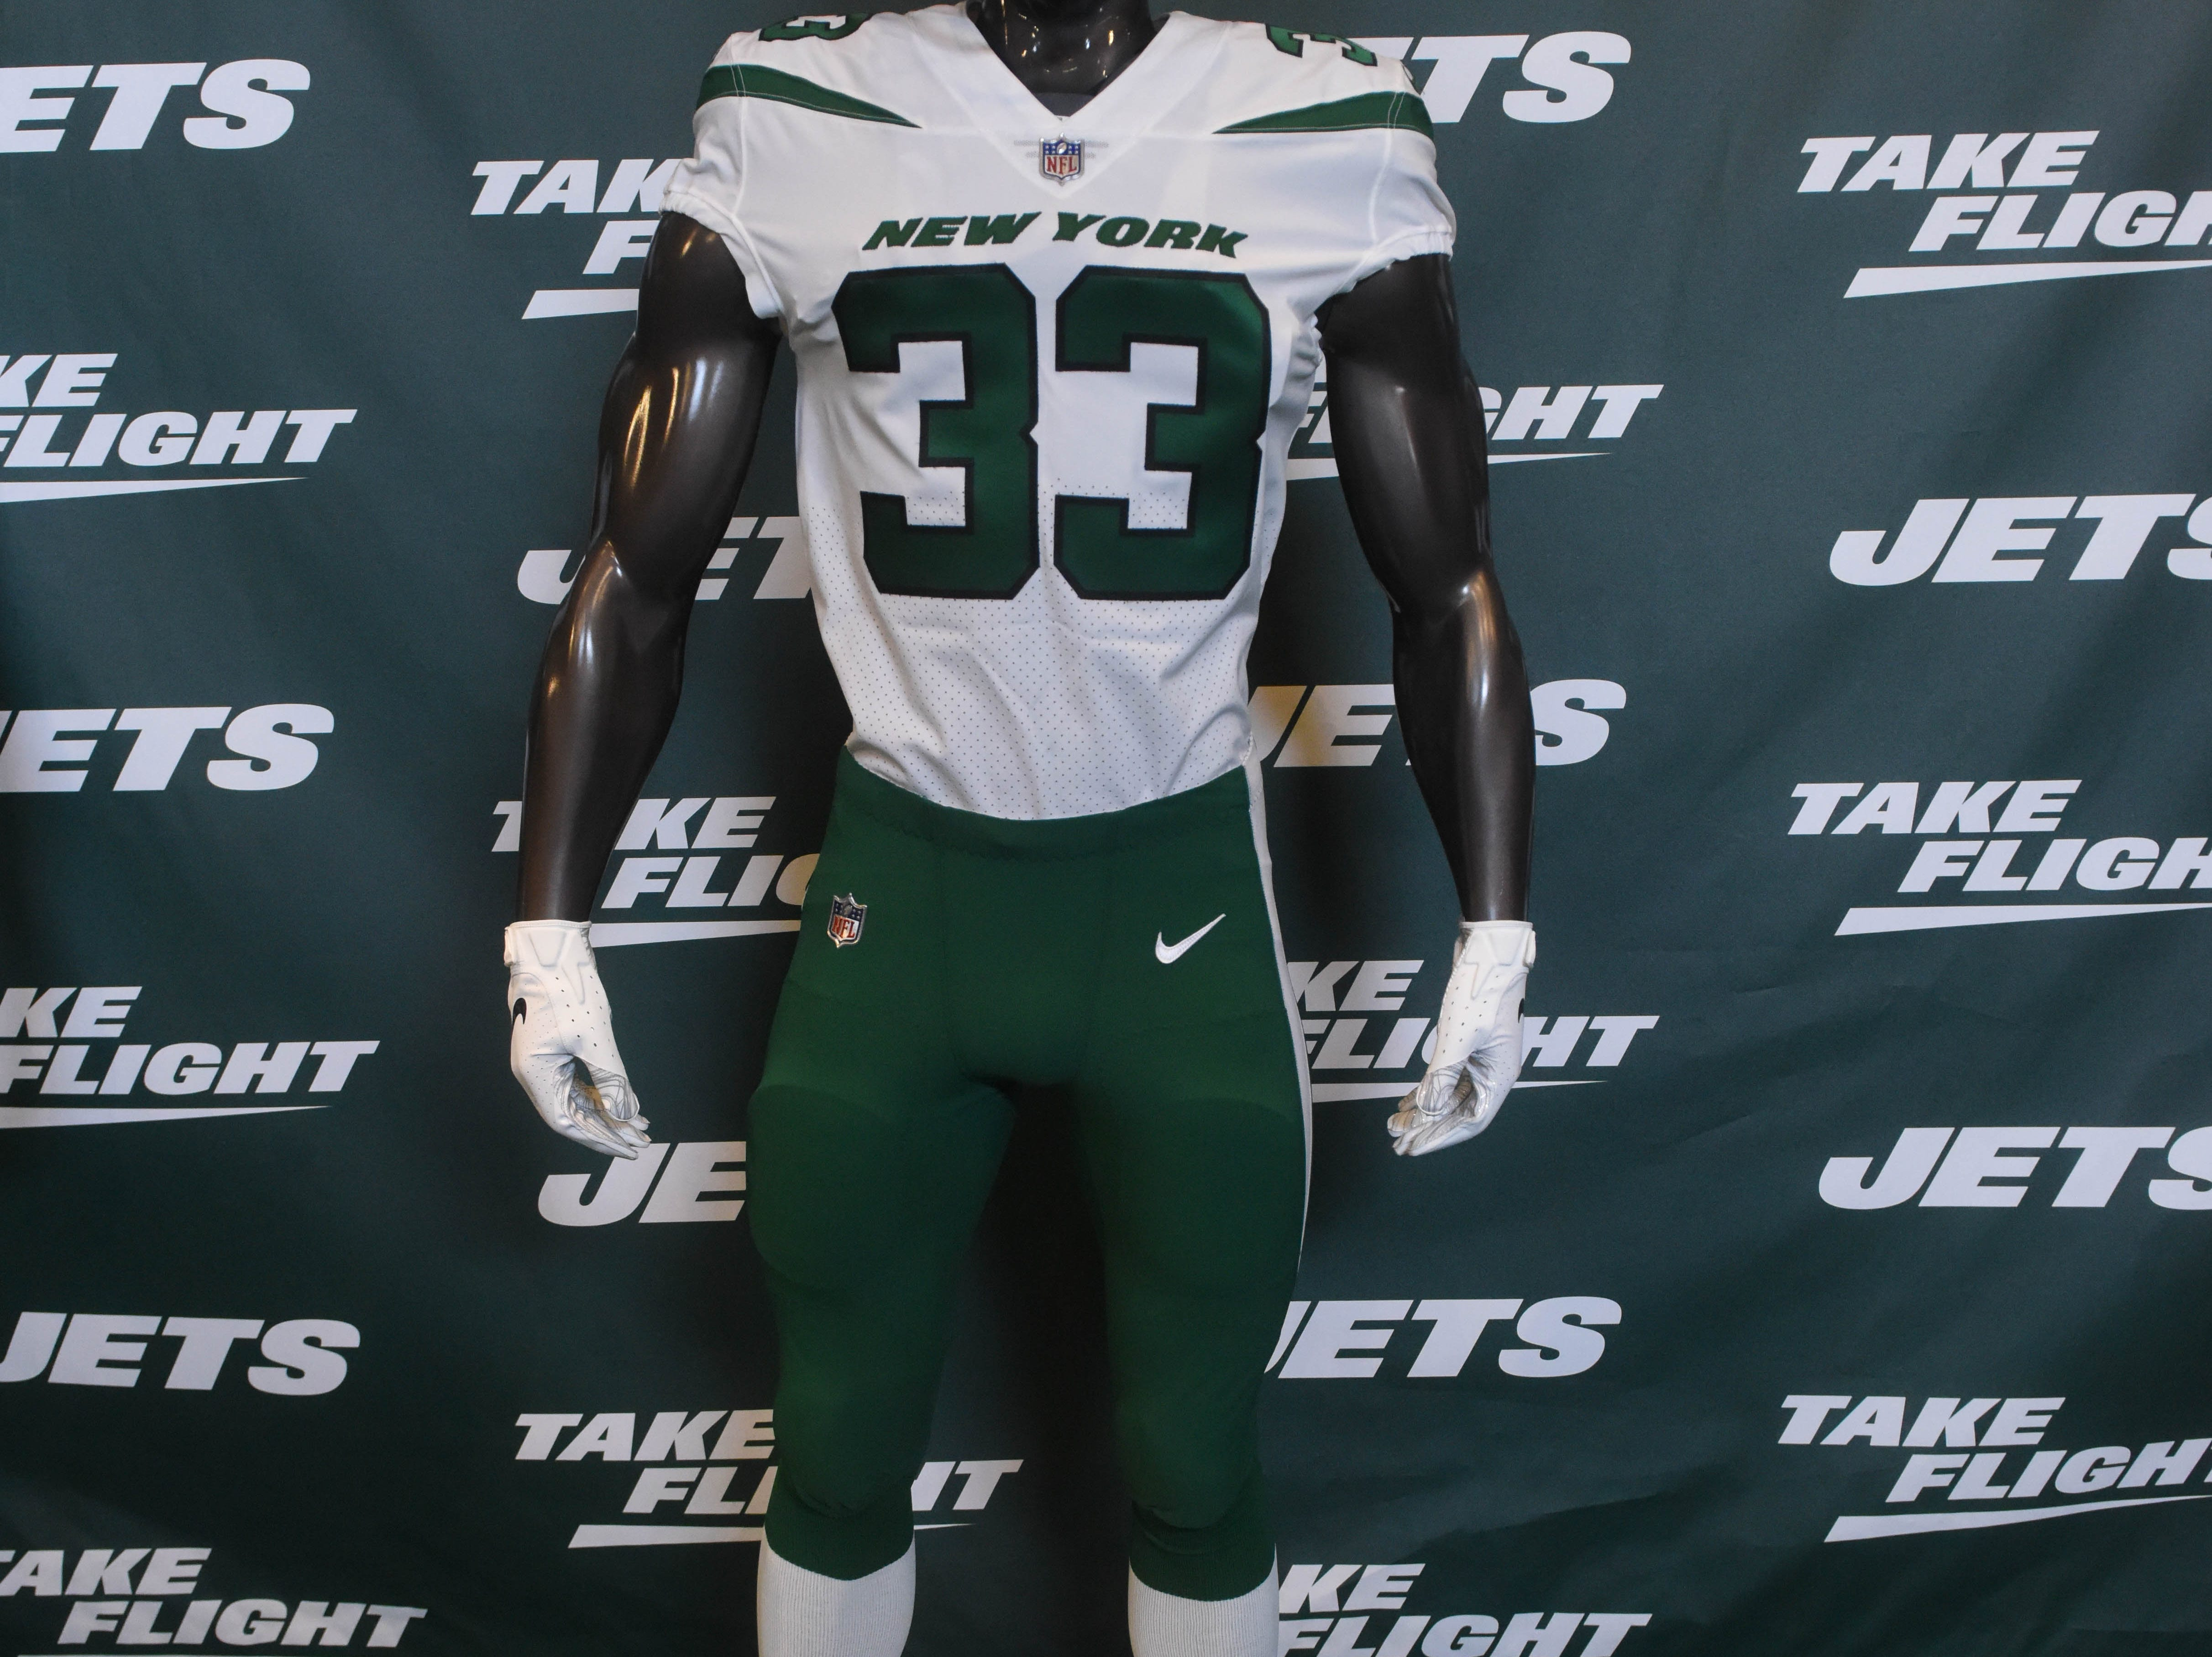 The new Jets uniforms. The NY Jets unveiled their new football uniforms with an event hosted by JB Smoove at Gotham Hall in New York. 04/05/2019